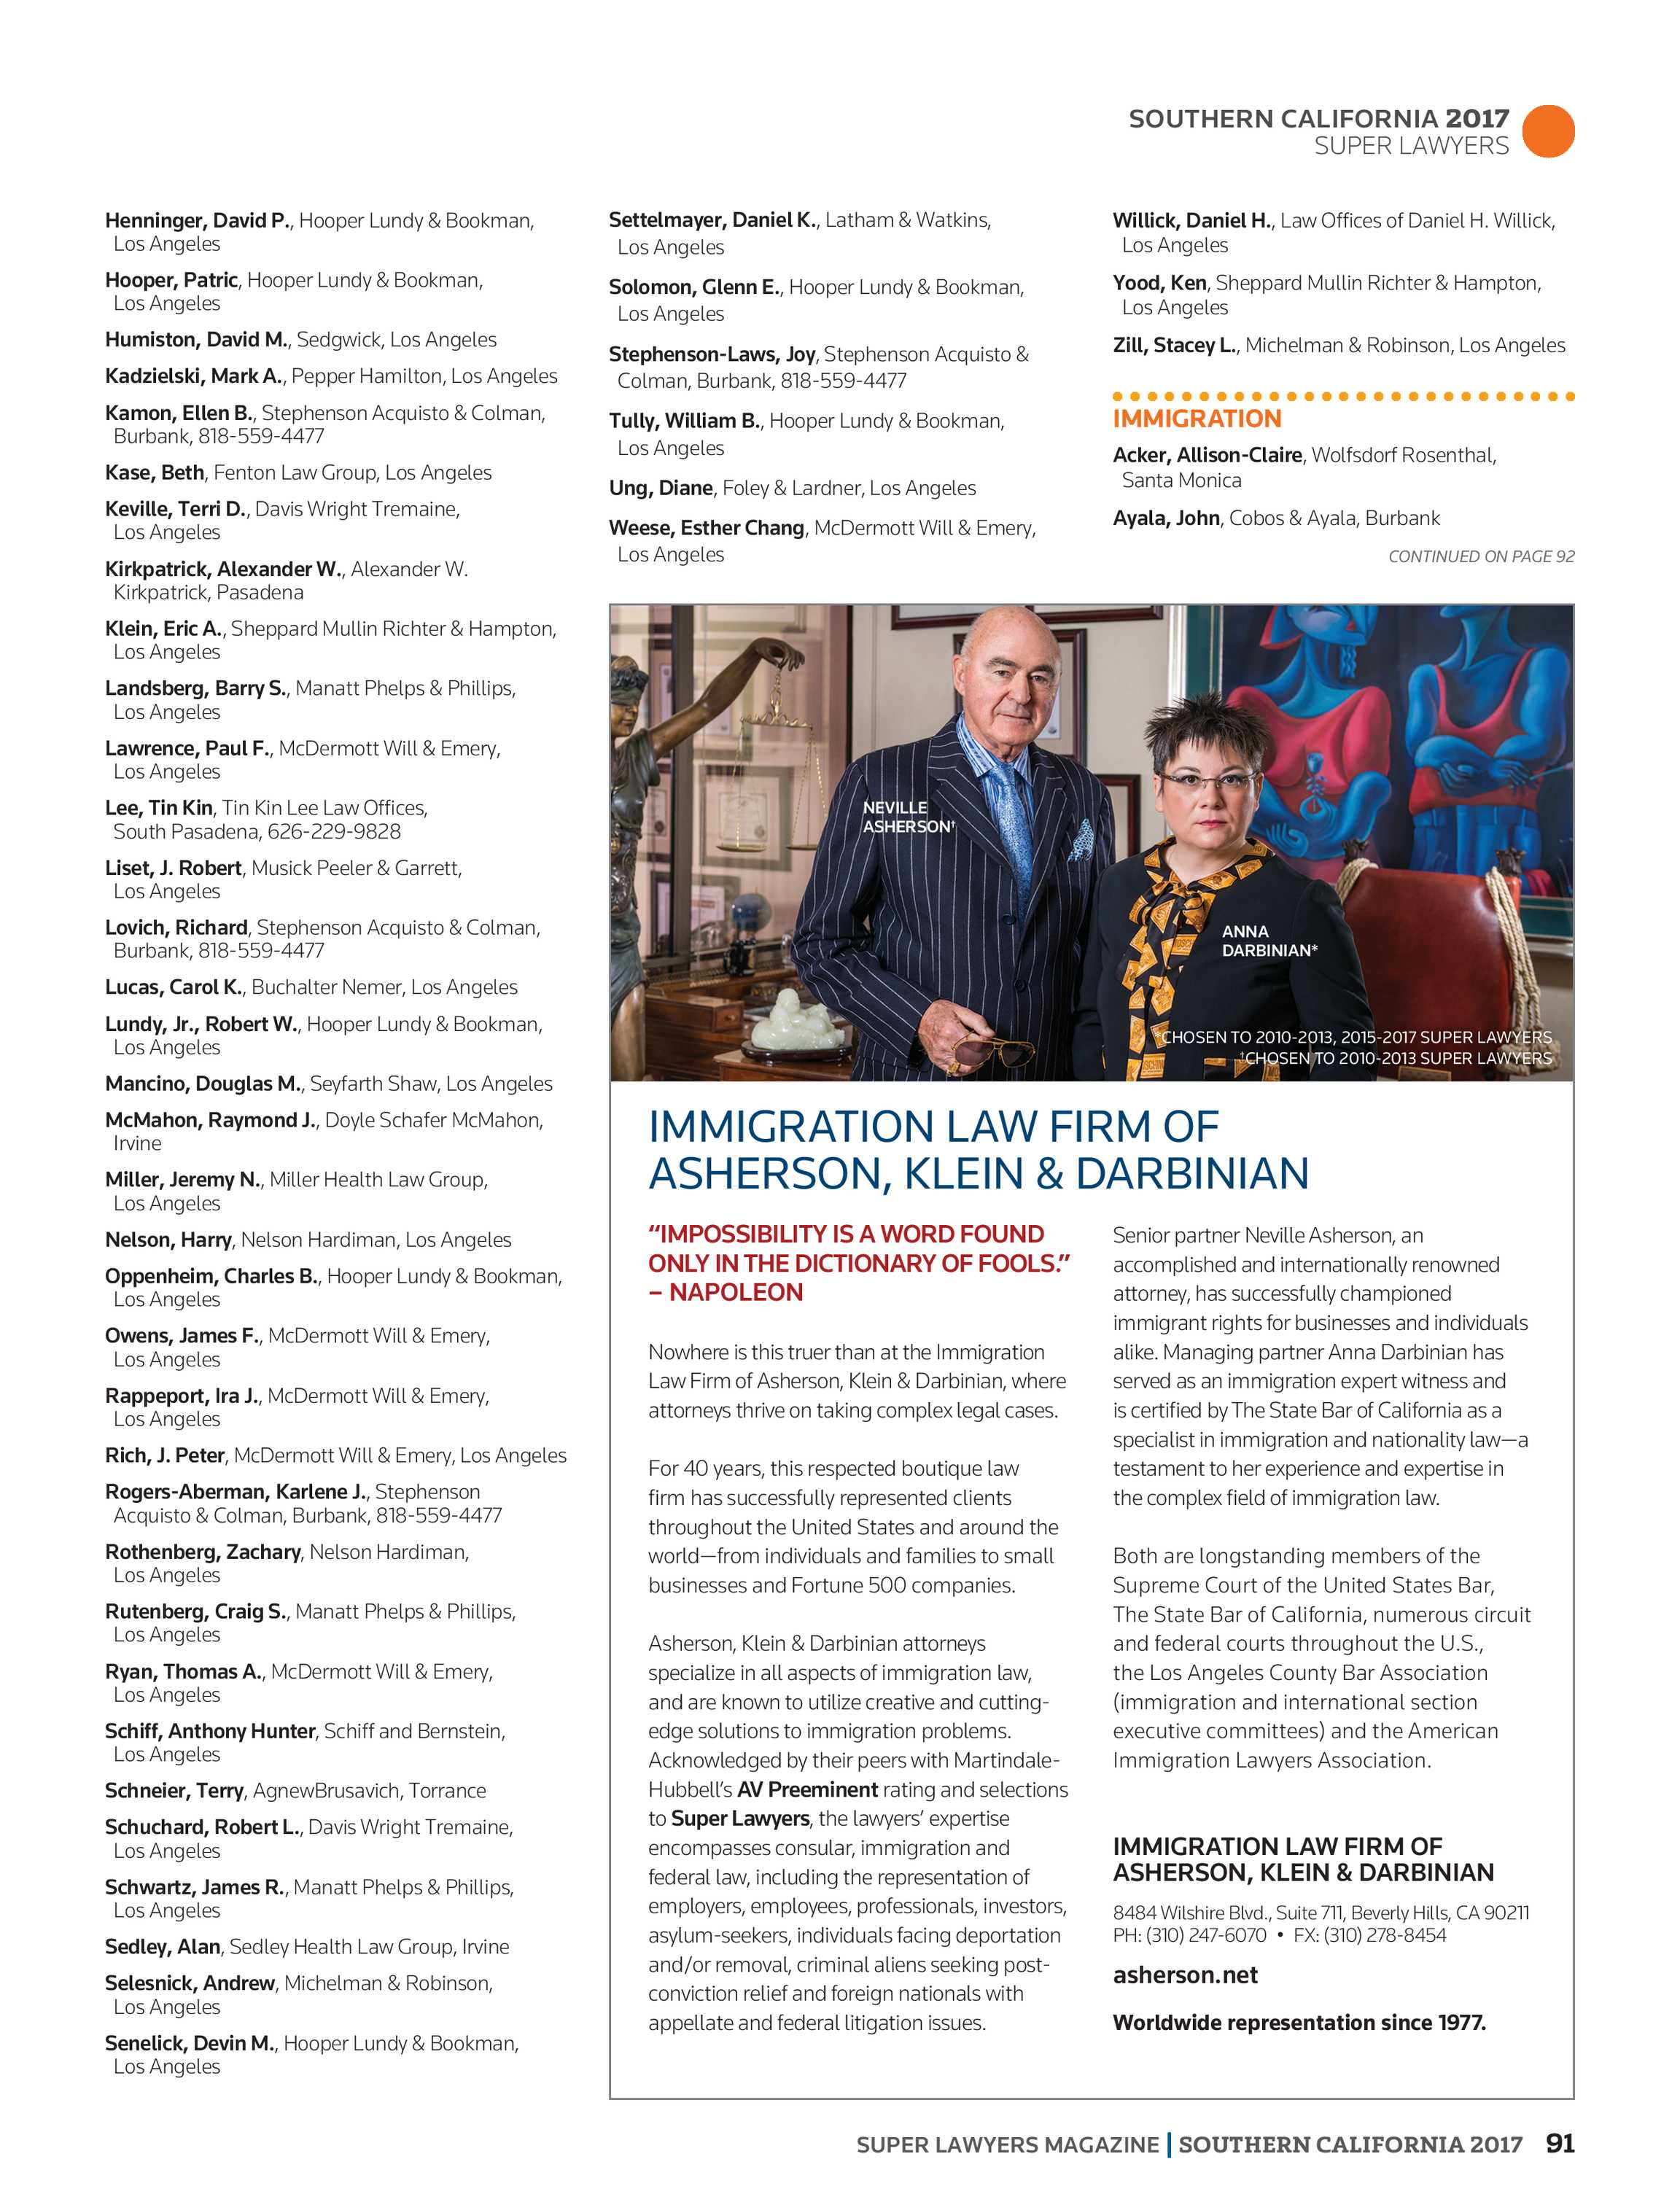 Super Lawyers - Southern California 2017 - page 91